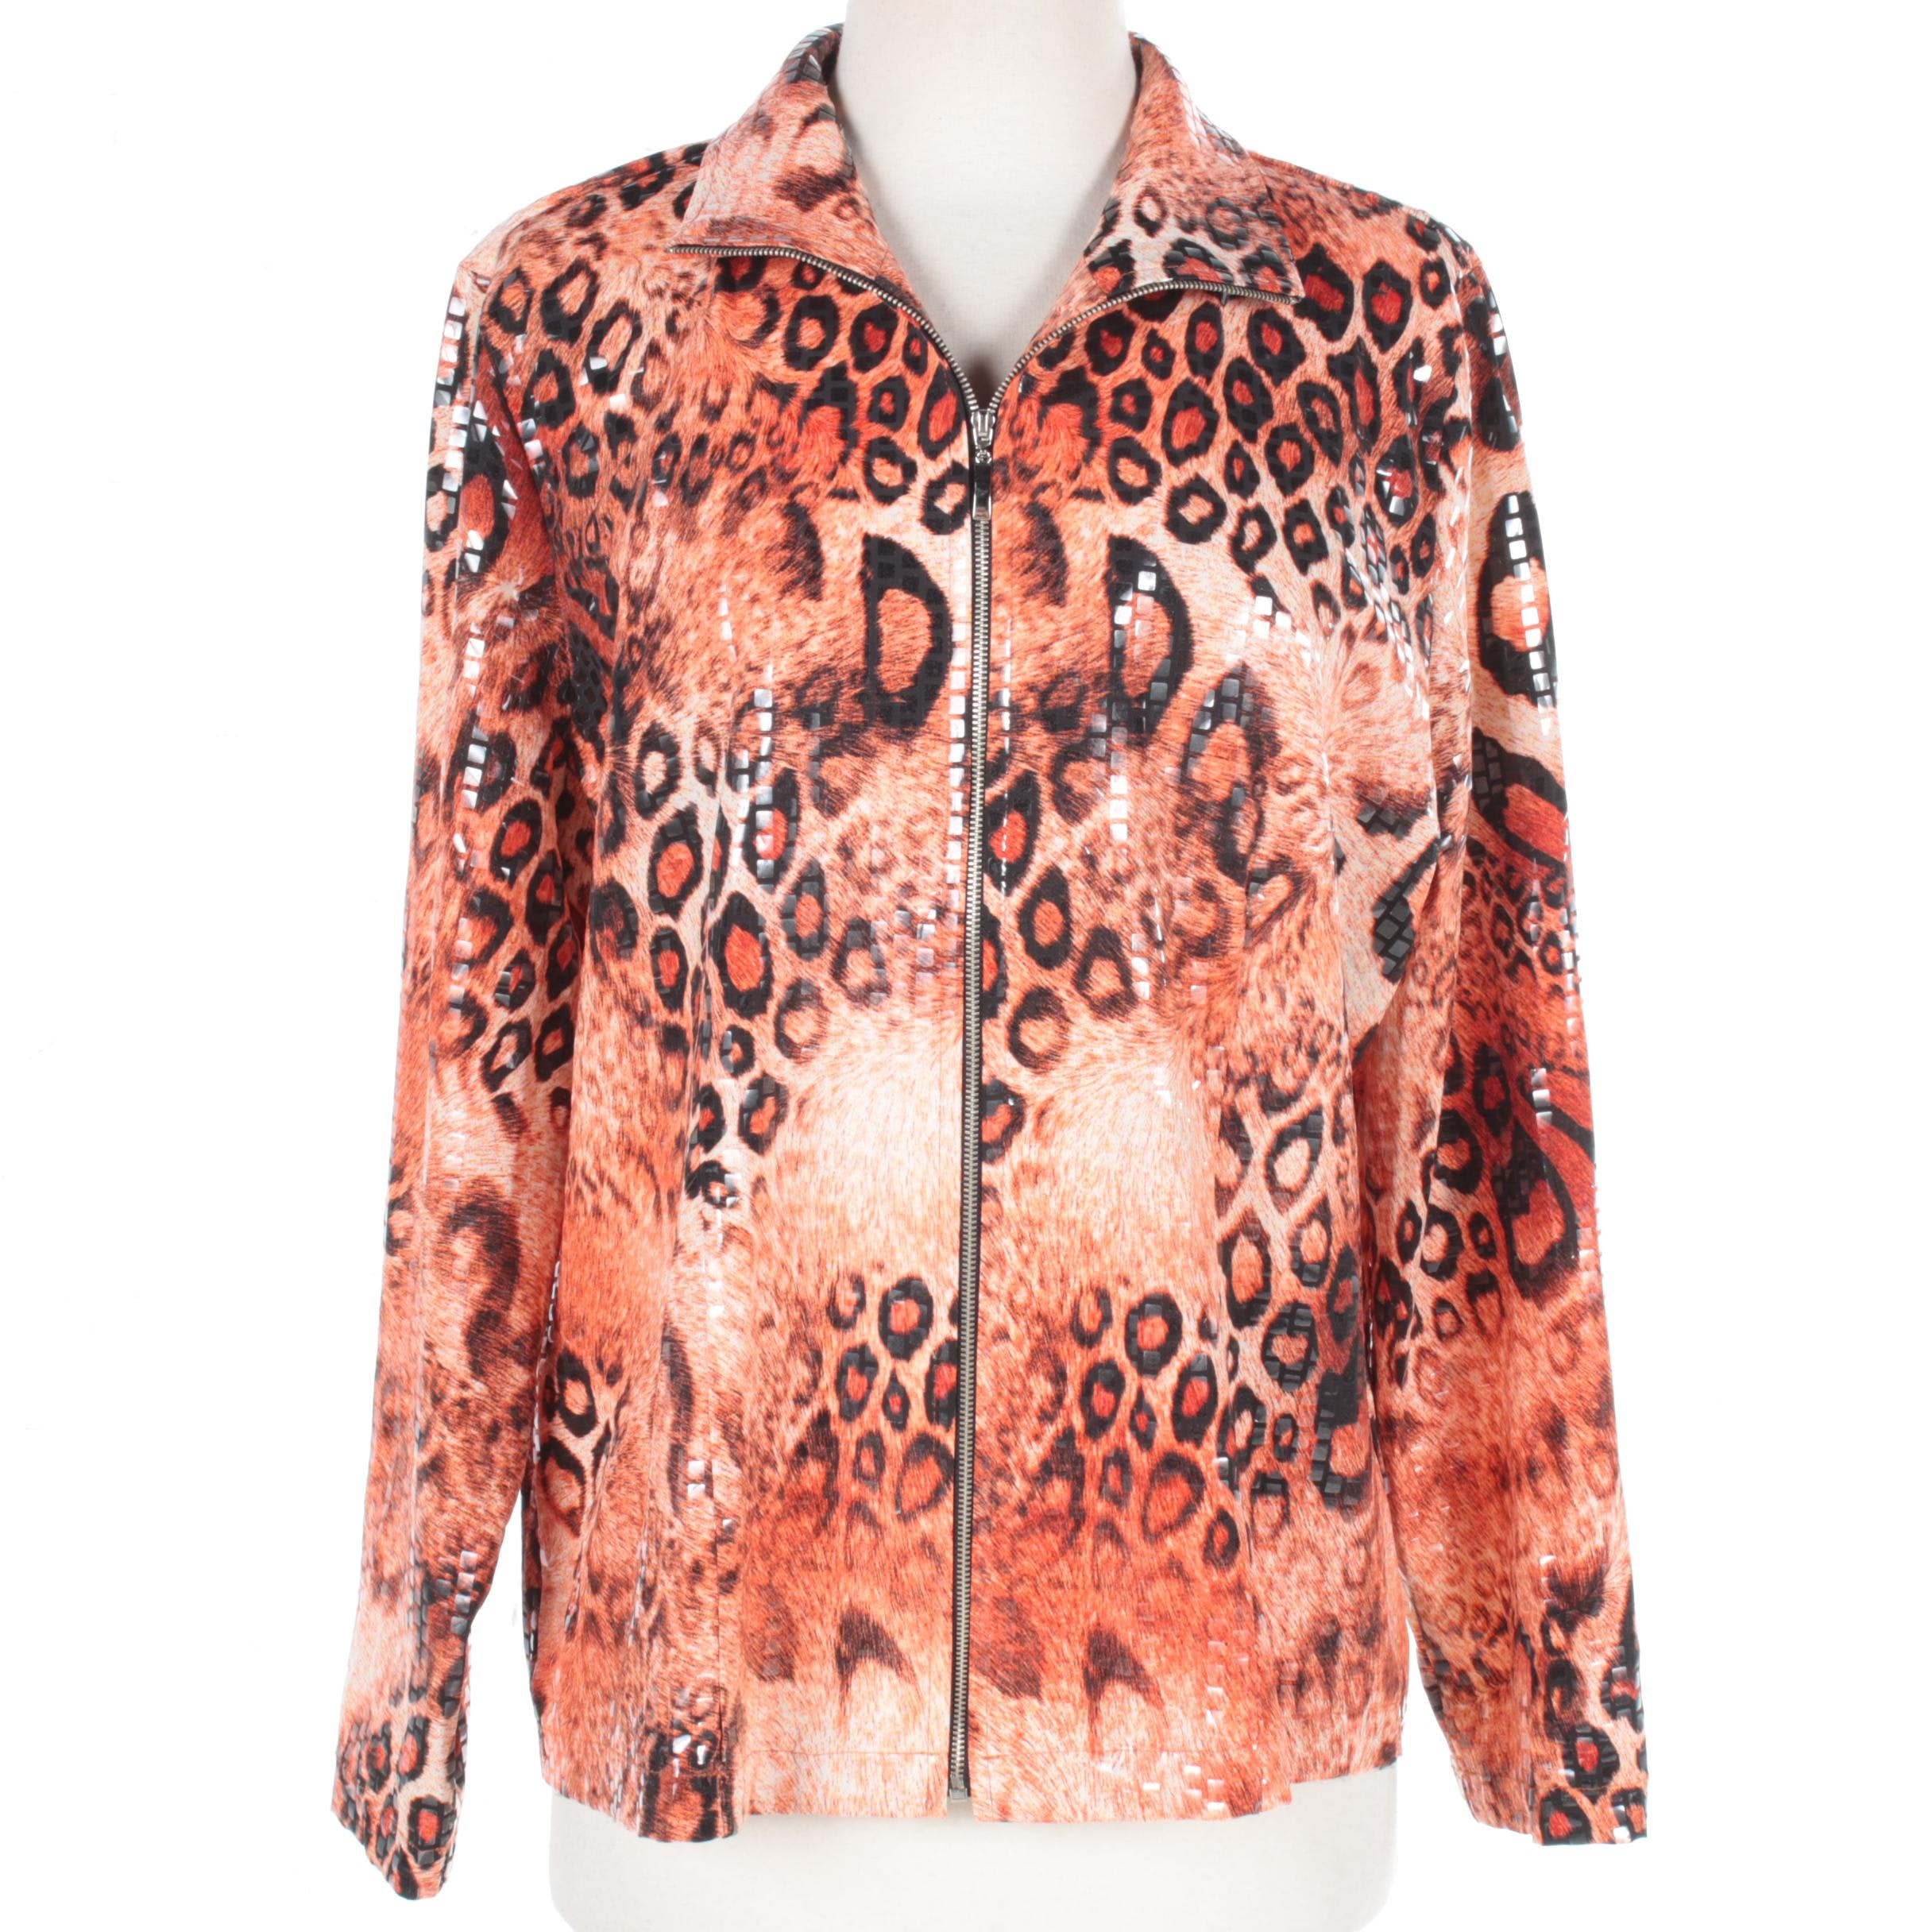 Exclusively Misook Embellished Animal Print Zipper Front Jacket